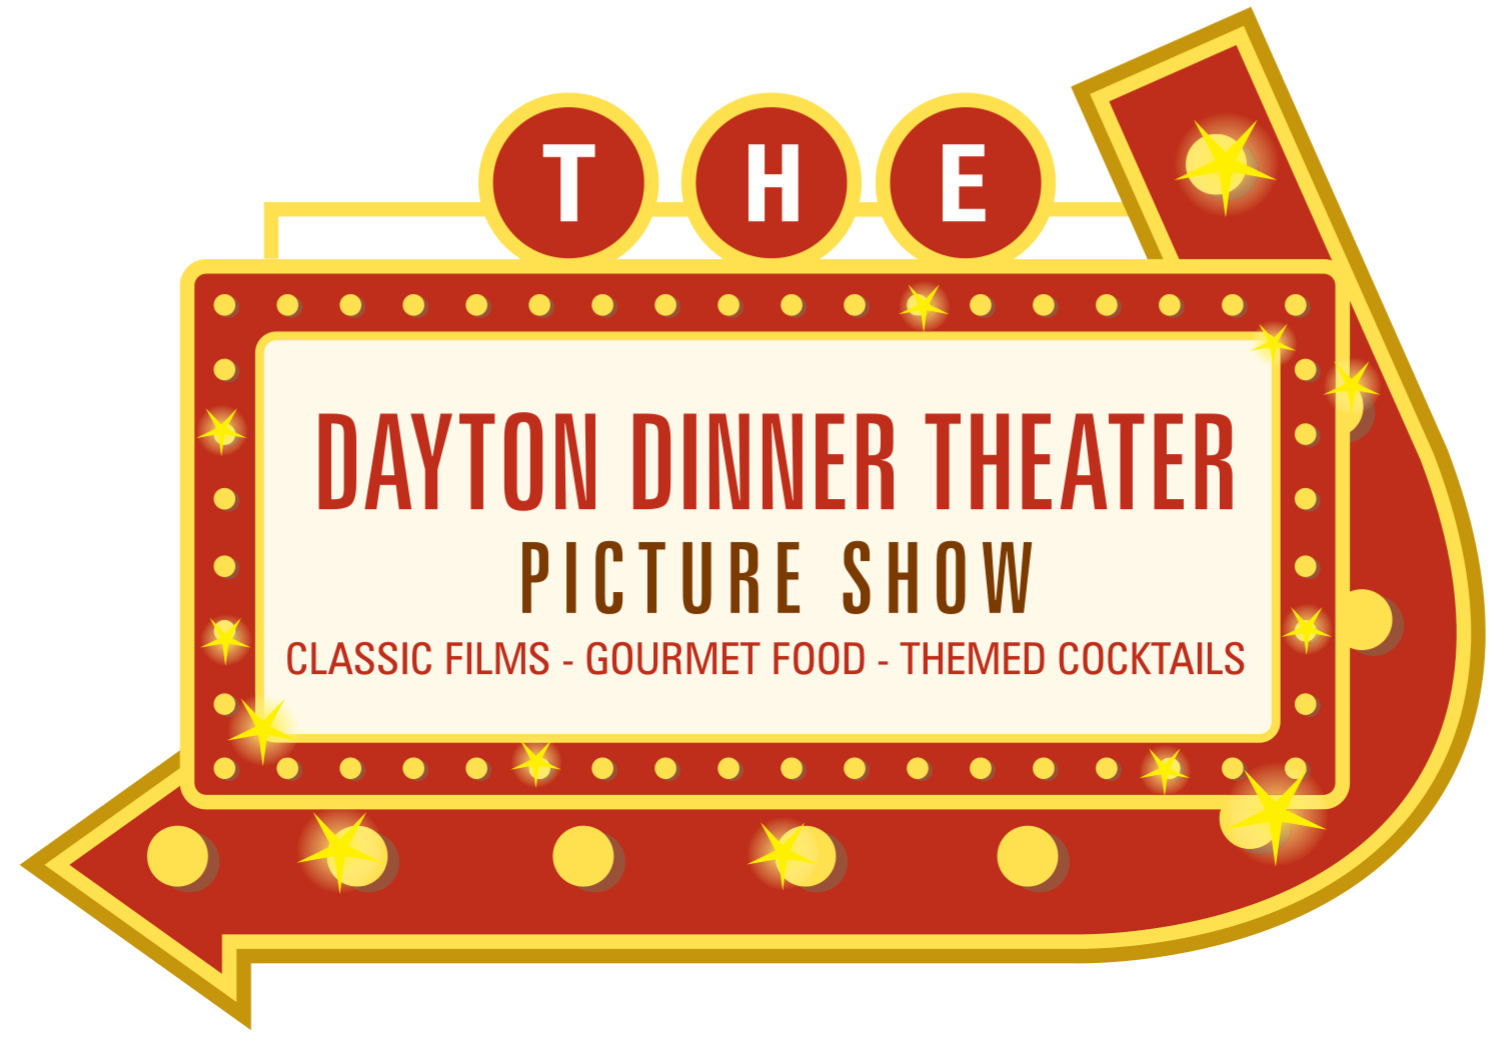 Dayton Ohio Dinner Theater Classic Movie Theater